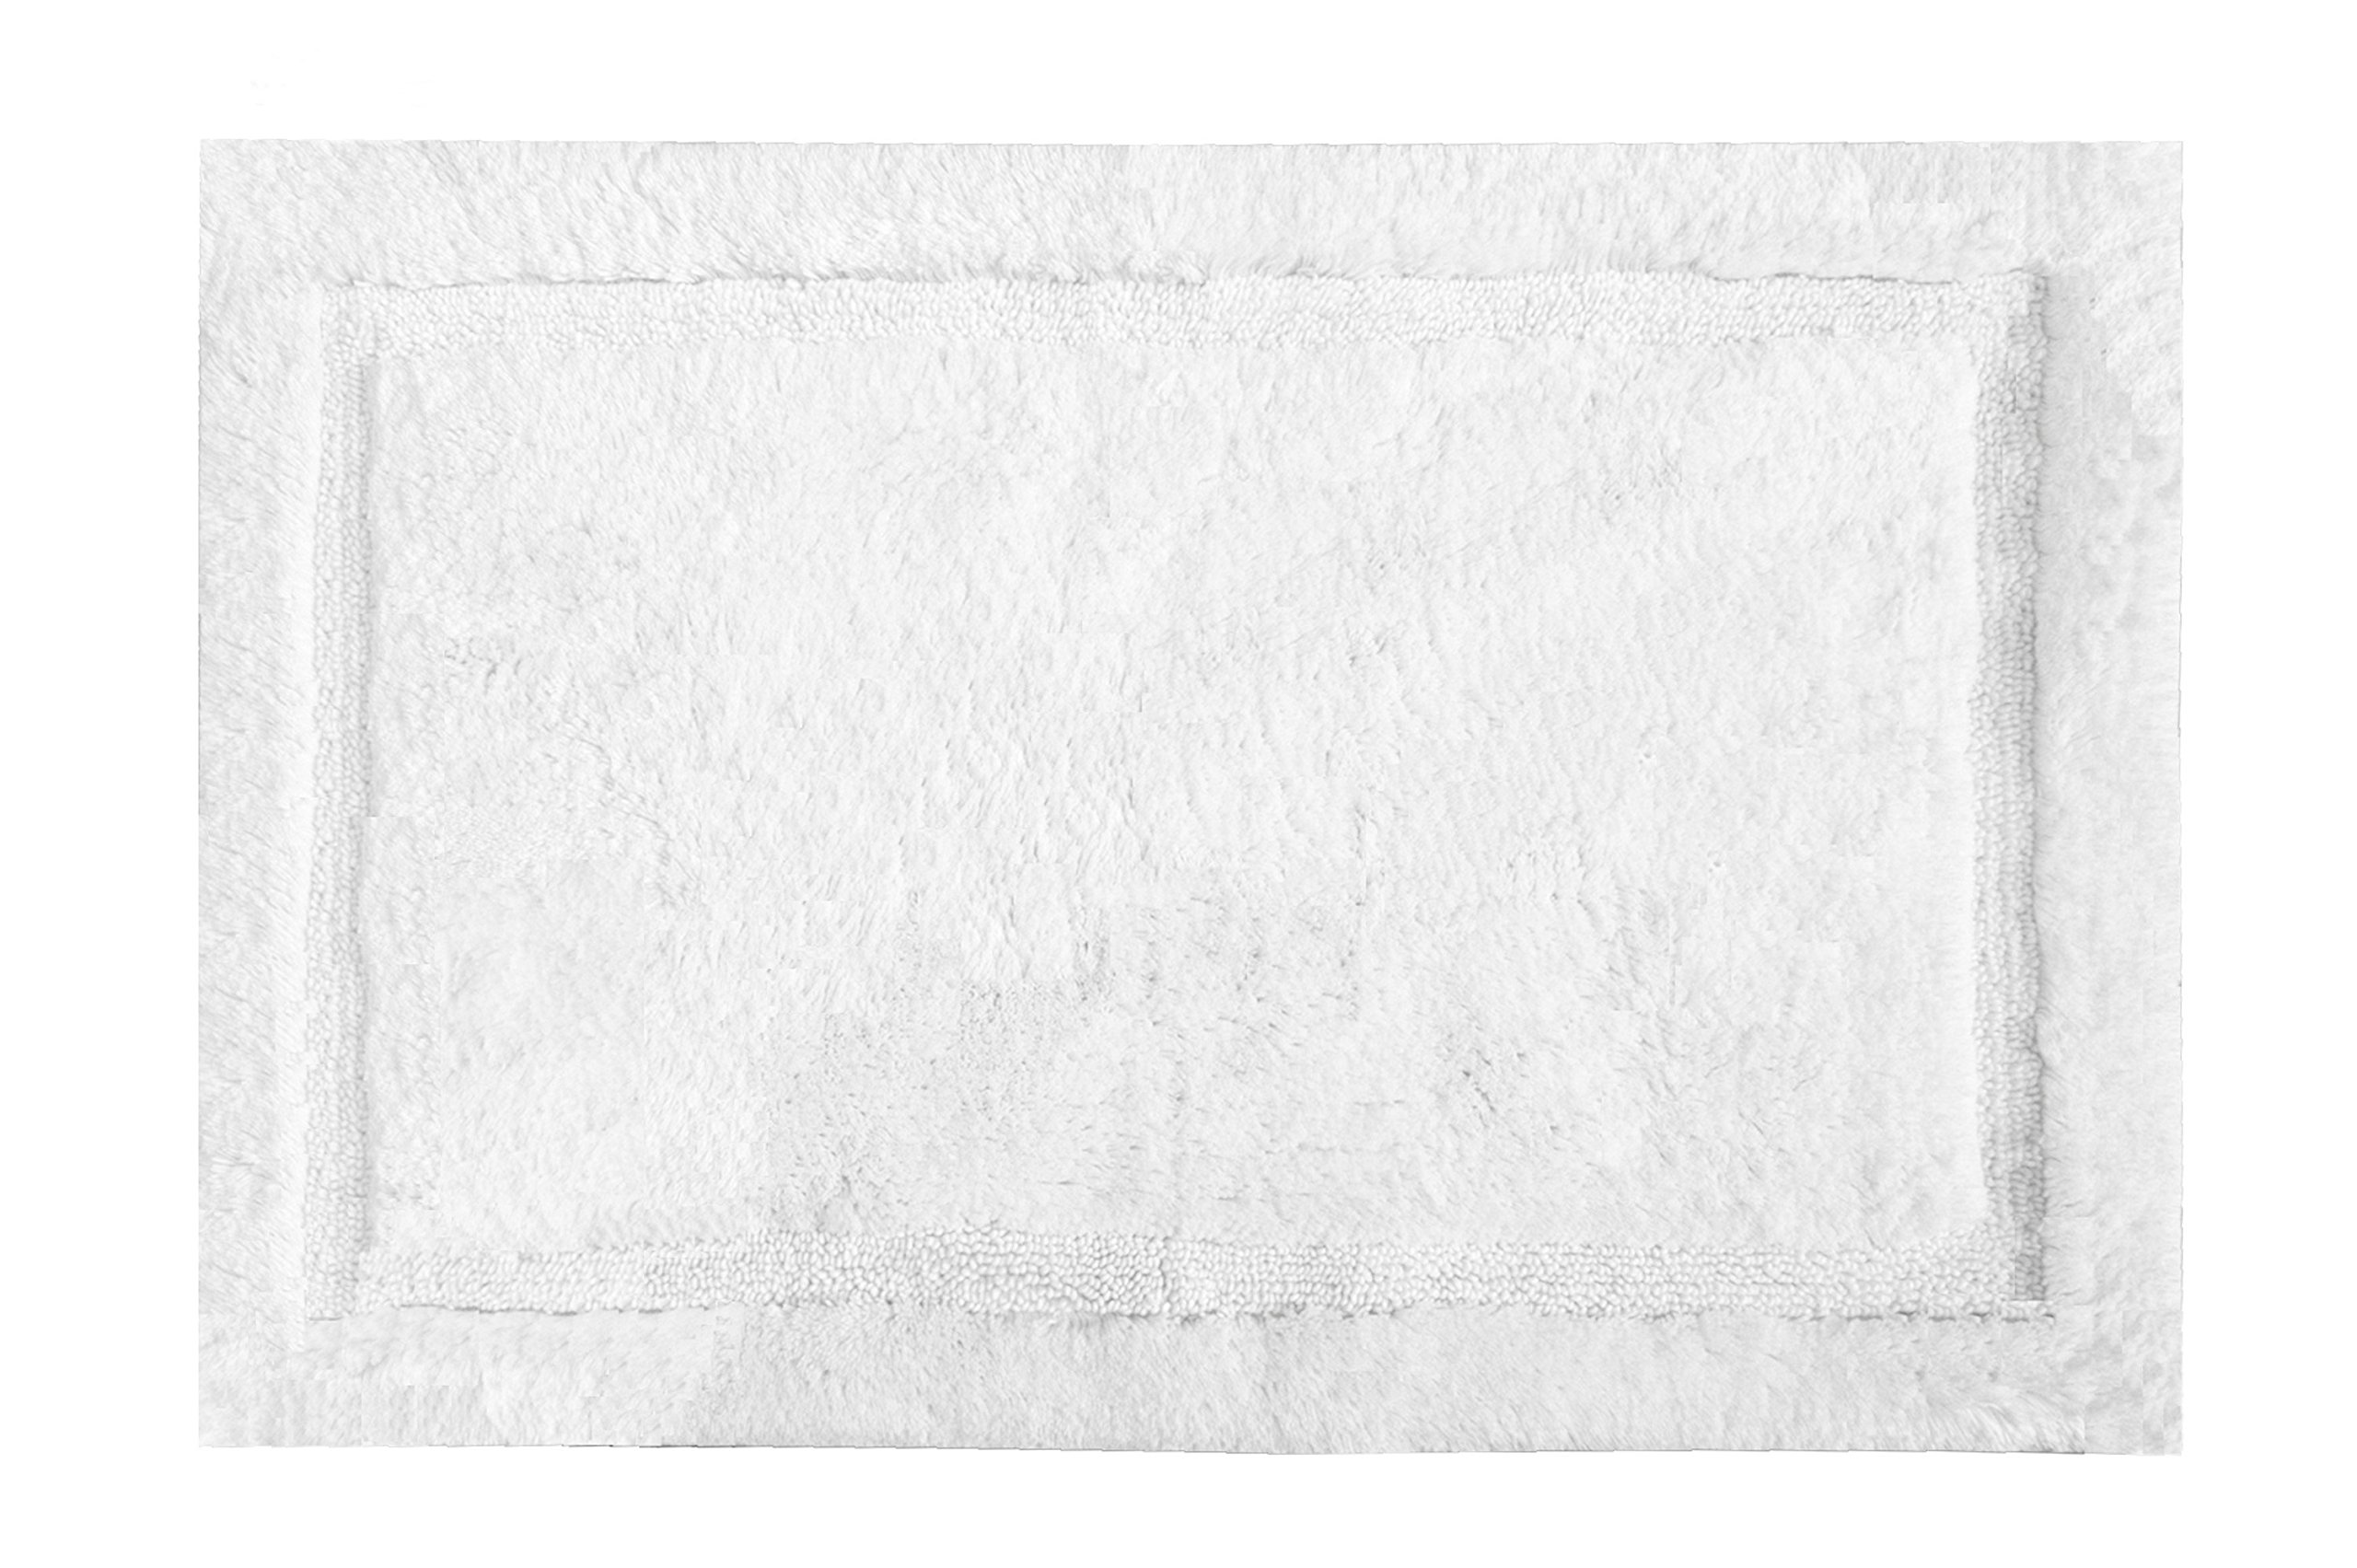 Grund Asheville Series 100% Organic Cotton Bath Rug 24-Inch by 40-Inch White